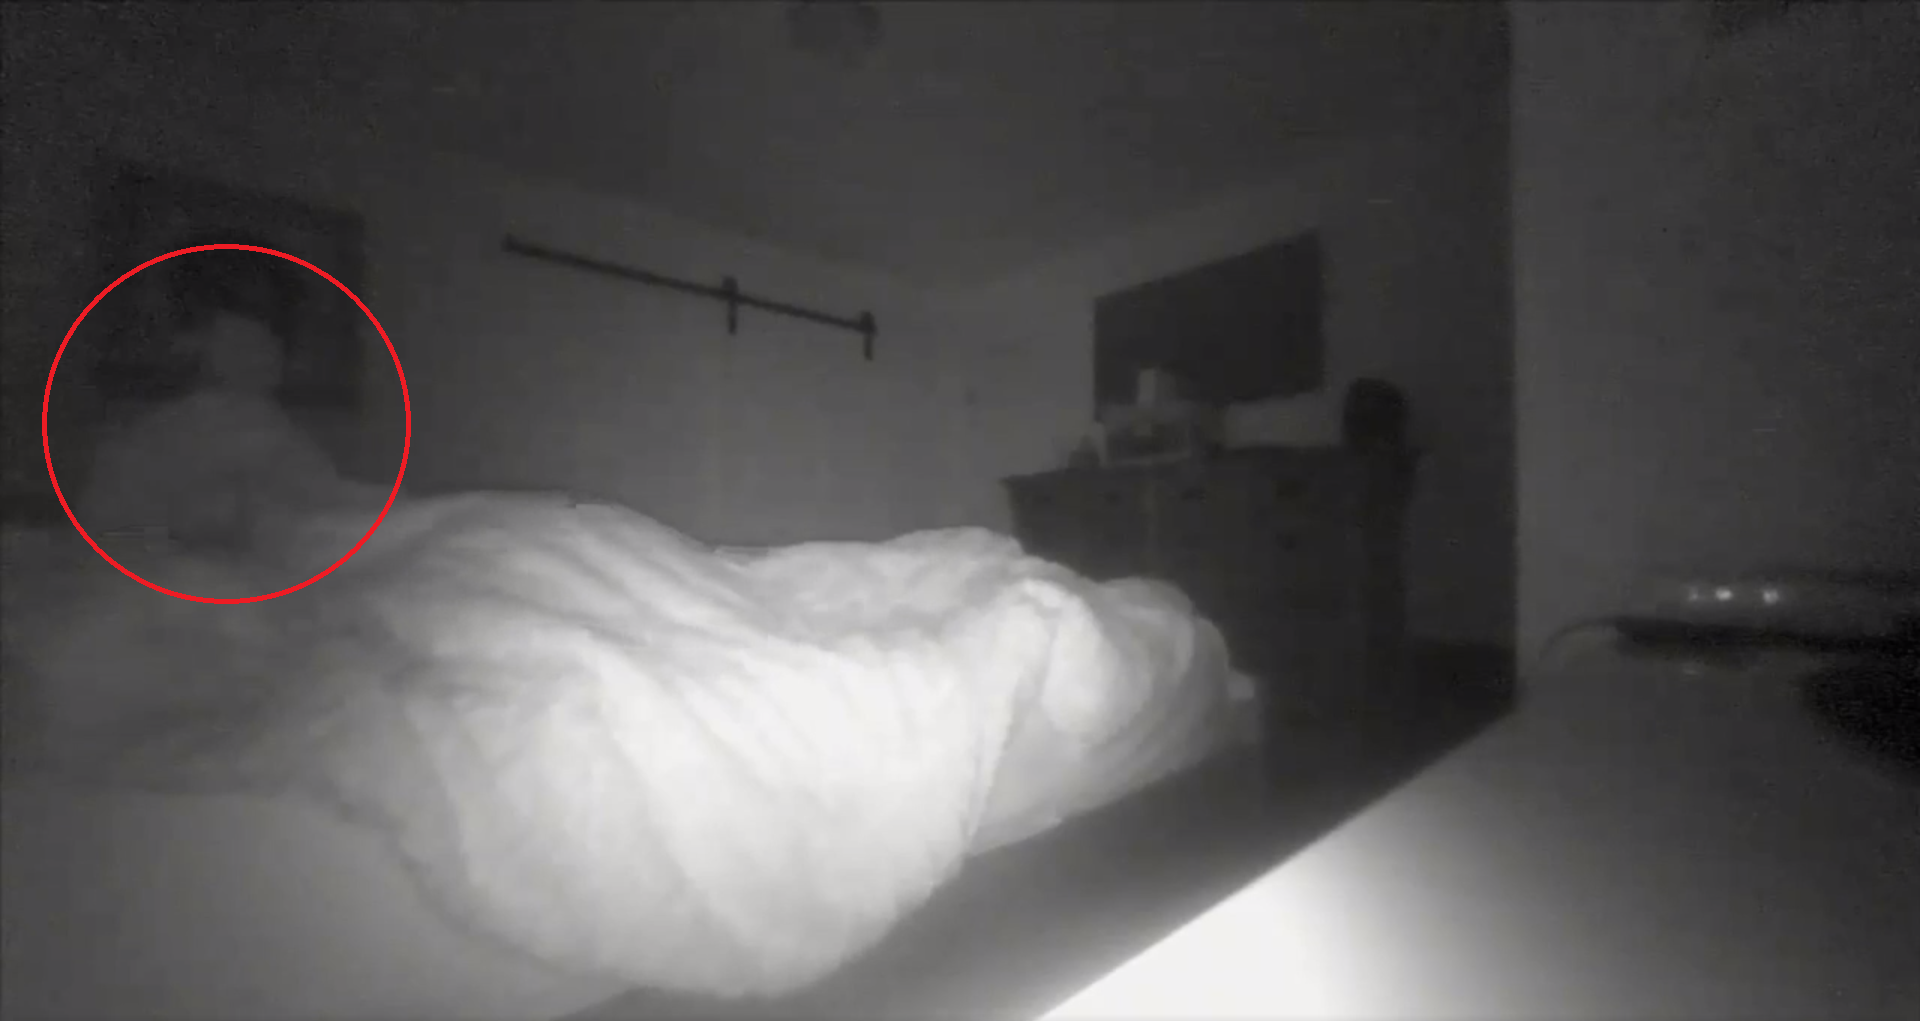 Paranormal Activity eat your heart out. Credit: Reddit